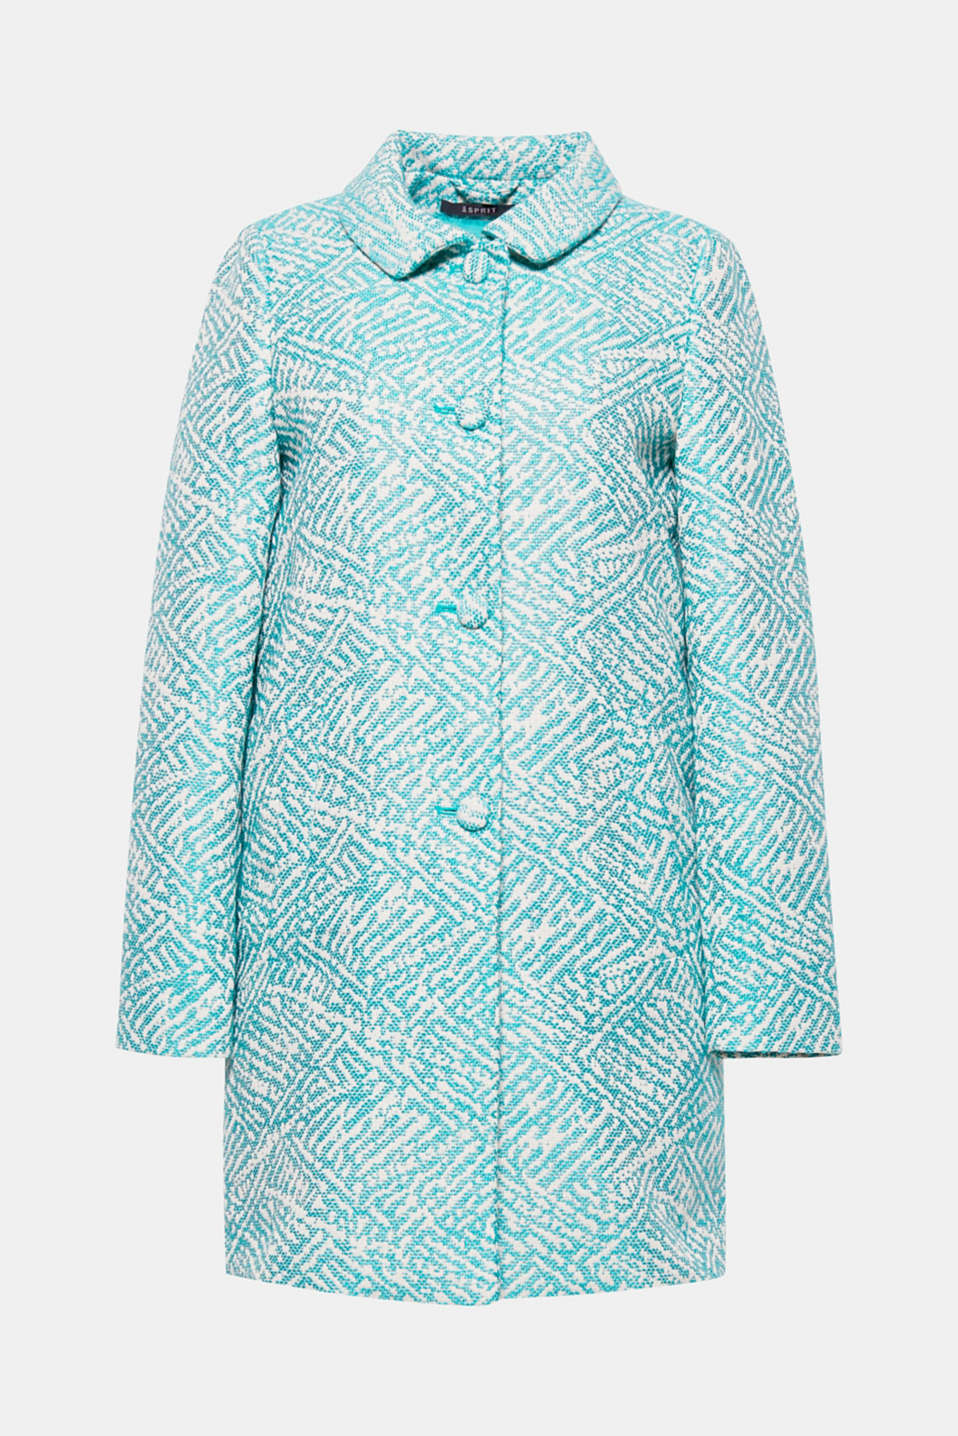 The trendy A-line design and striking jacquard pattern give this coat its stylish flair.